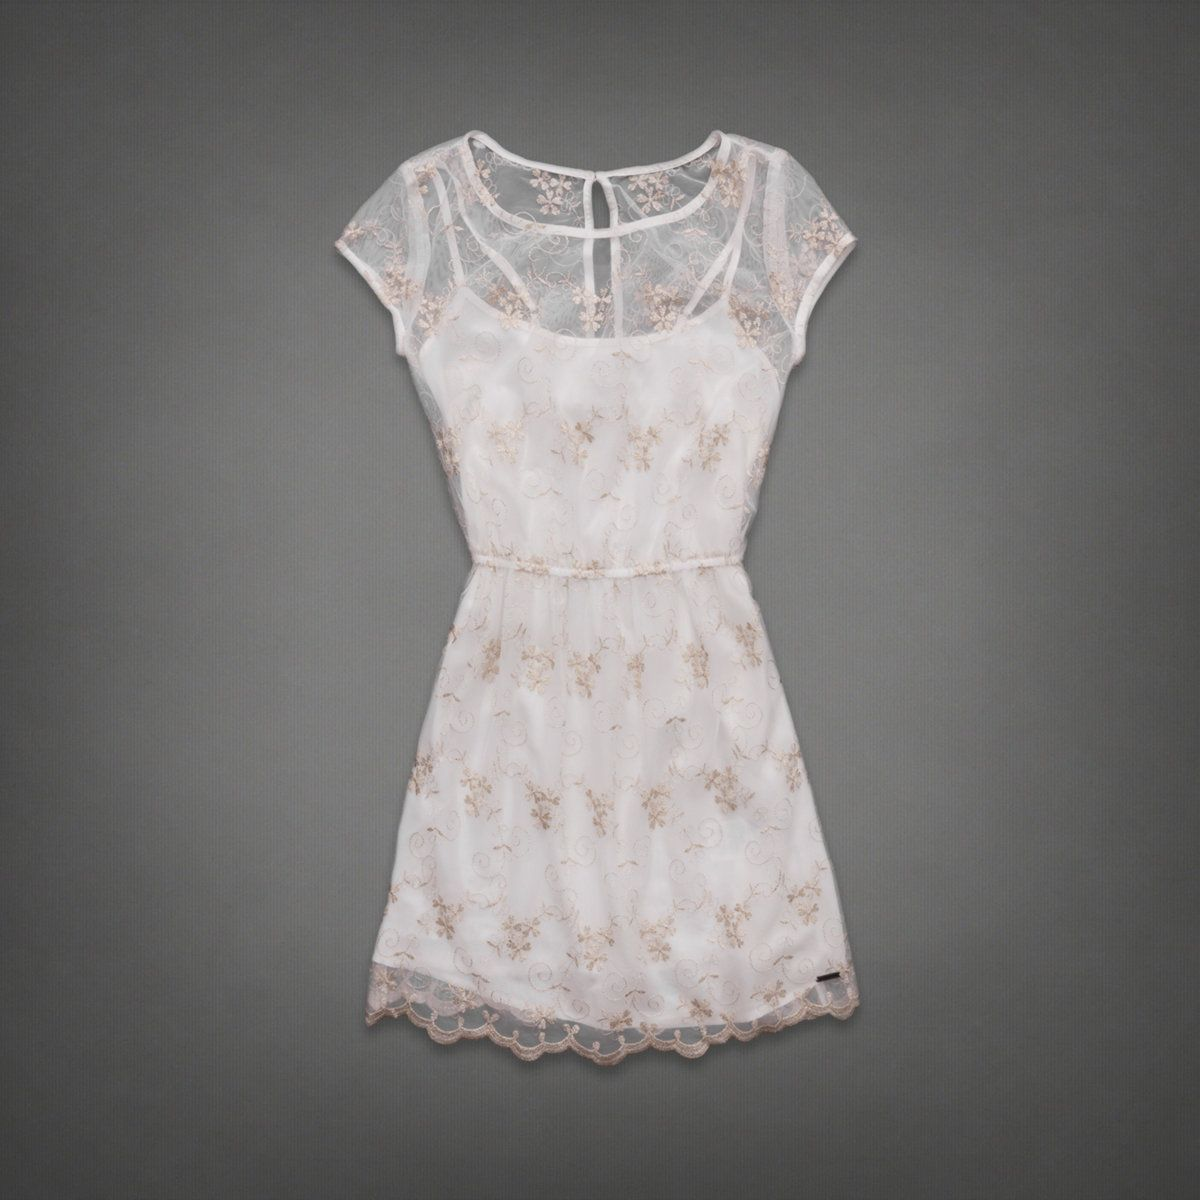 Abercrombie molly dress closet pinterest clothes and fashion